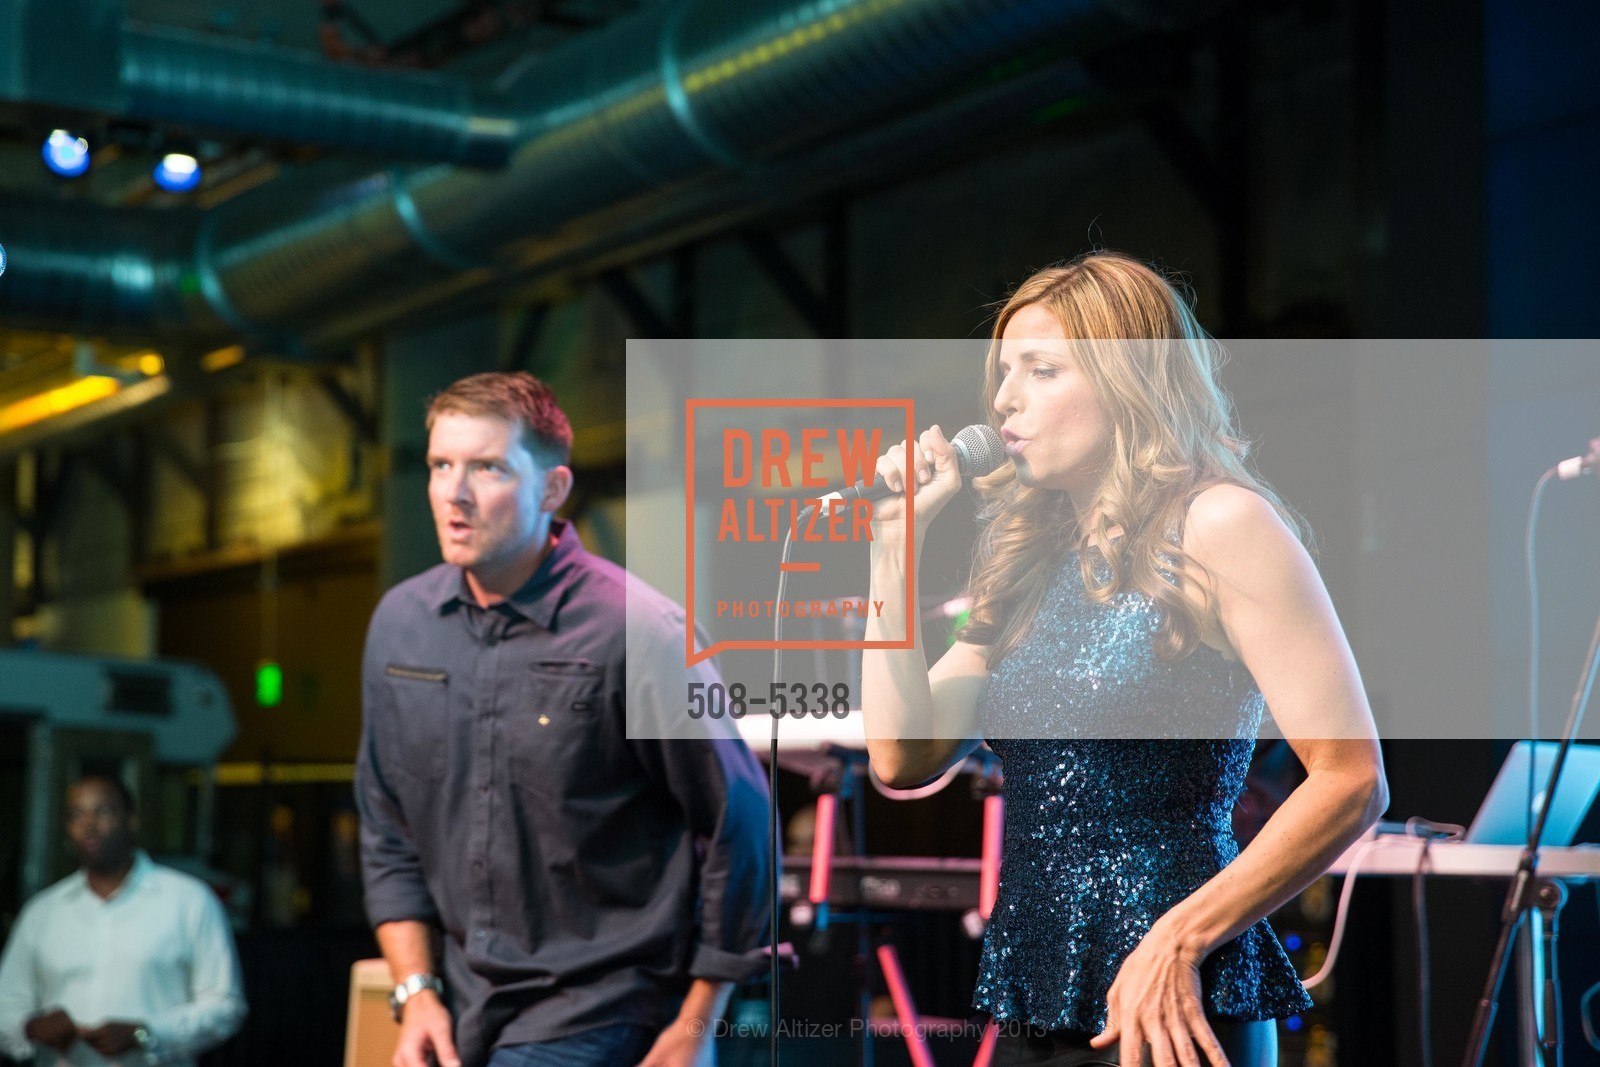 Performance By Coverflow, Photo #508-5338